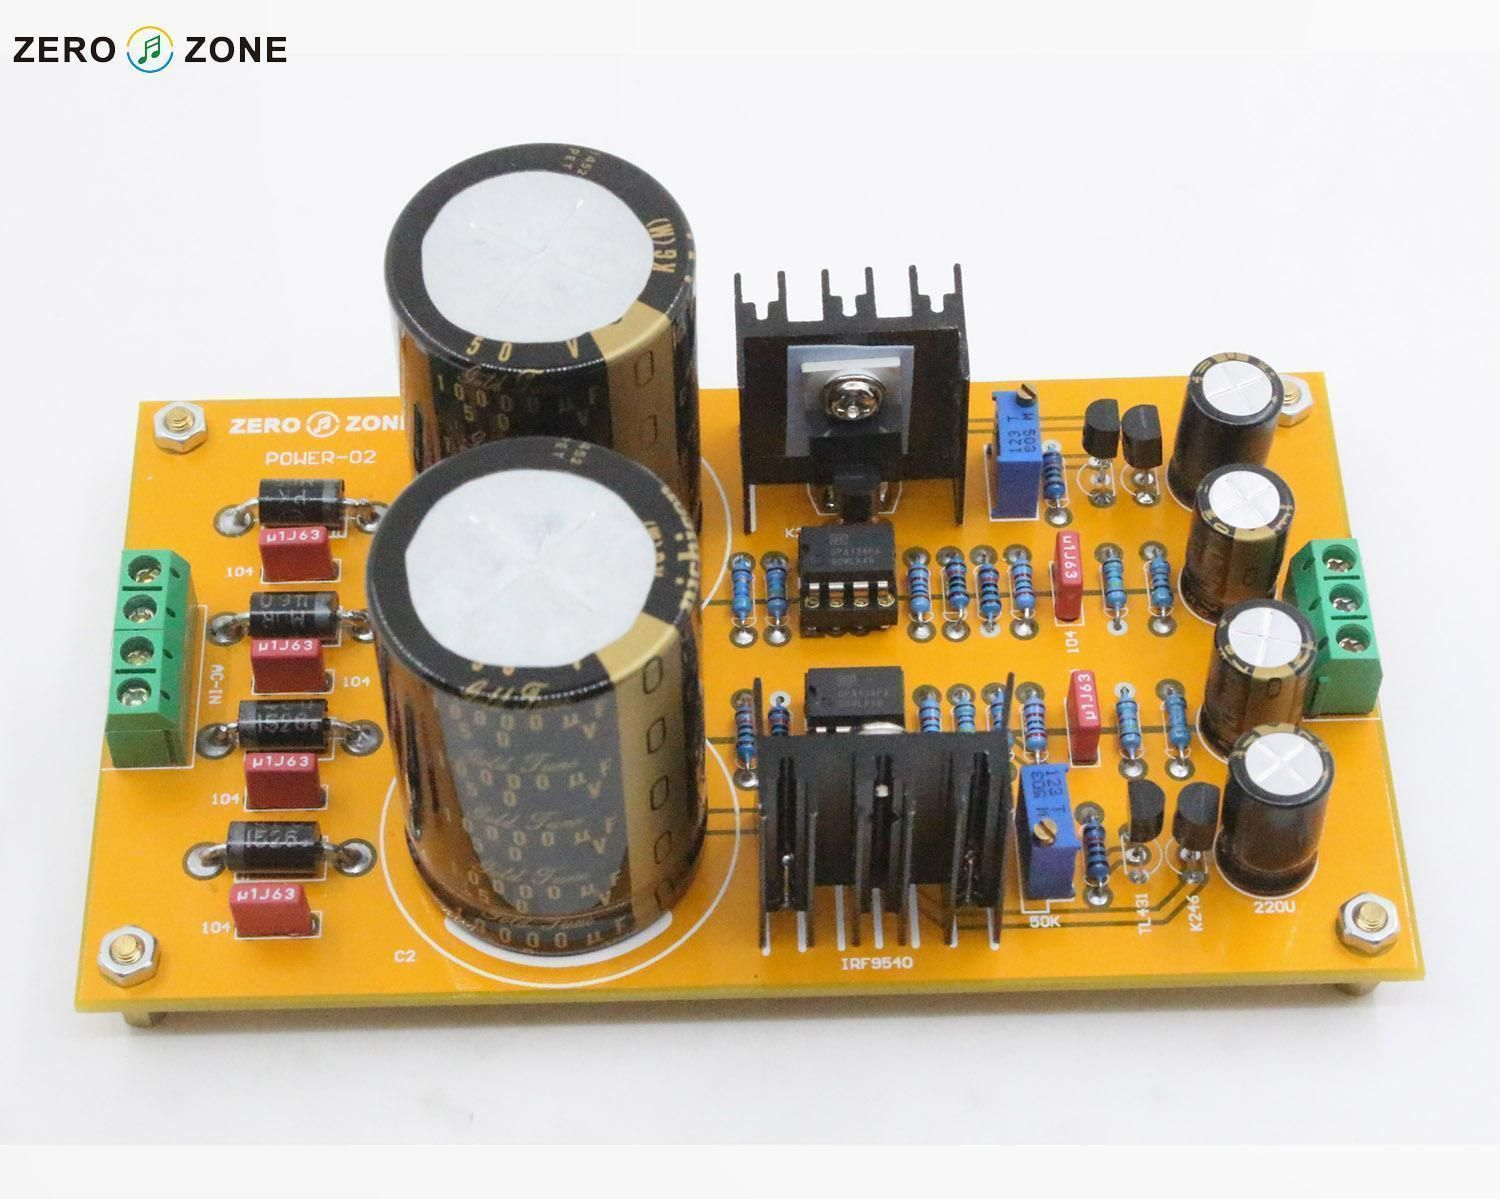 GZLOZONE Assembeld Upgraded POWER-02 Adjustable Regulator / Linear Power Supply For Preamplifier